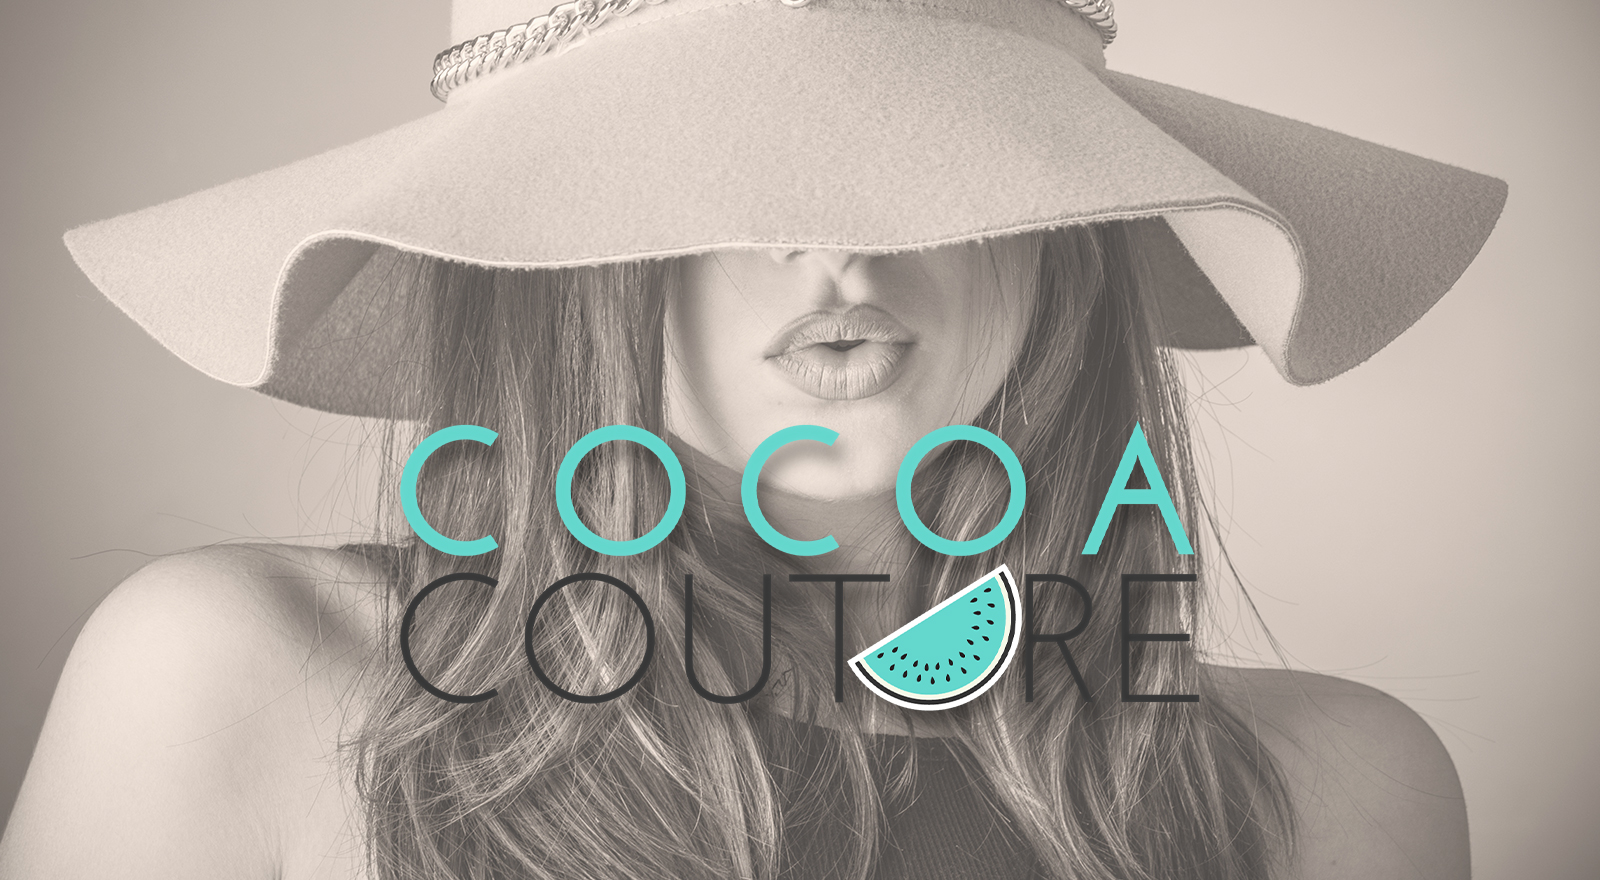 Logo design for Cocoa Couture